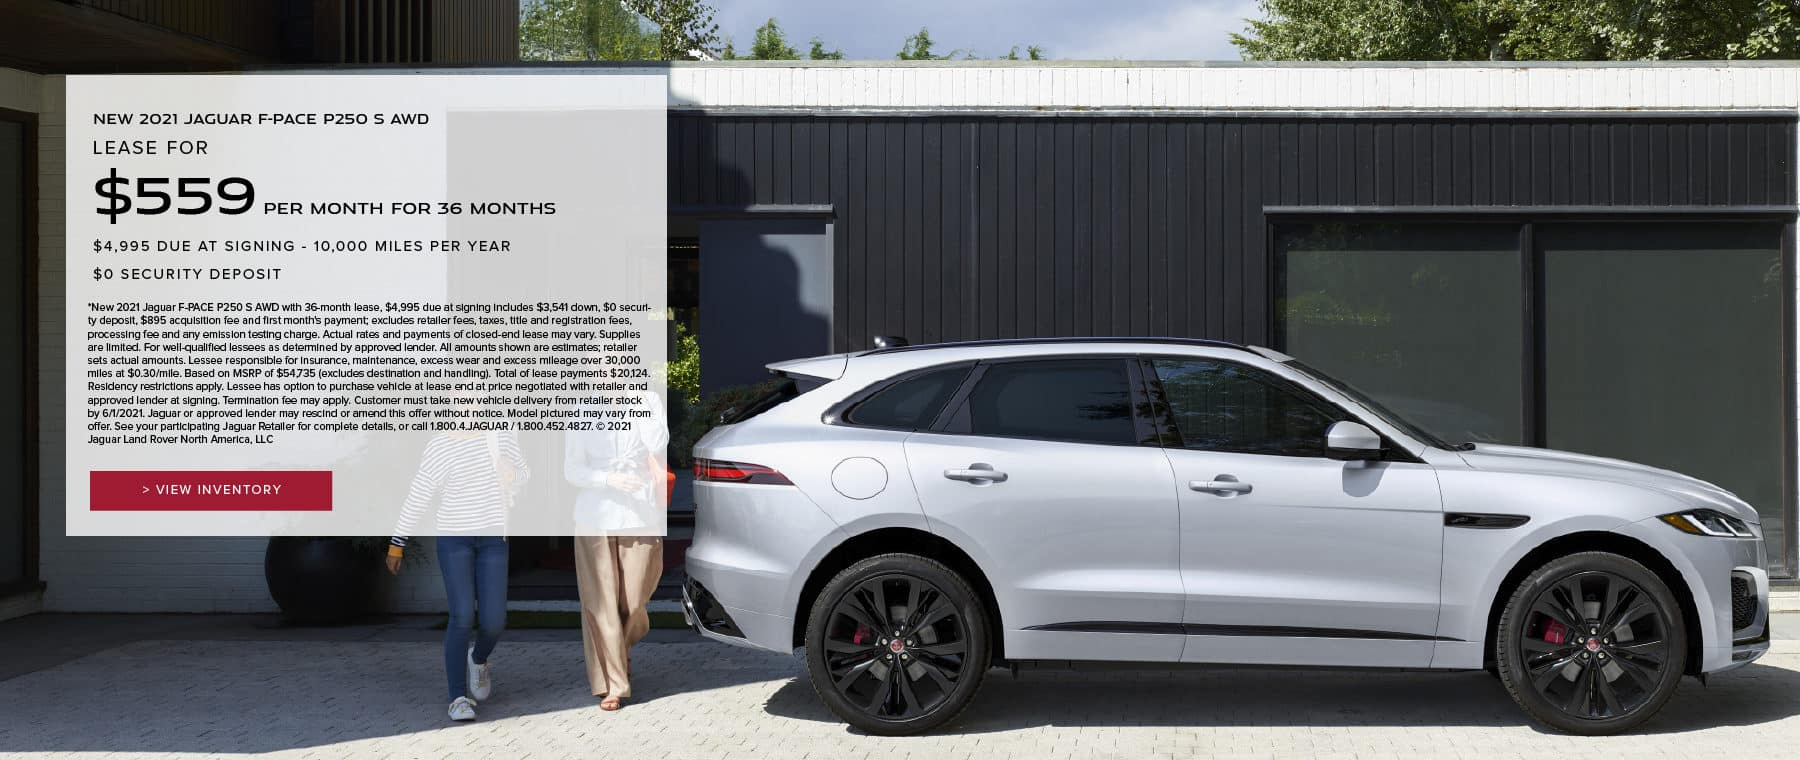 NEW 2021 JAGUAR F-PACE P250 S AWD. $559 PER MONTH. 36 MONTH LEASE TERM. $4,995 CASH DUE AT SIGNING. $0 SECURITY DEPOSIT. 10,000 MILES PER YEAR. EXCLUDES RETAILER FEES, TAXES, TITLE AND REGISTRATION FEES, PROCESSING FEE AND ANY EMISSION TESTING CHARGE. OFFER ENDS 6/1/2021. VIEW INVENTORY. SILVER JAGUAR F-PACE PARKED IN DRIVEWAY.